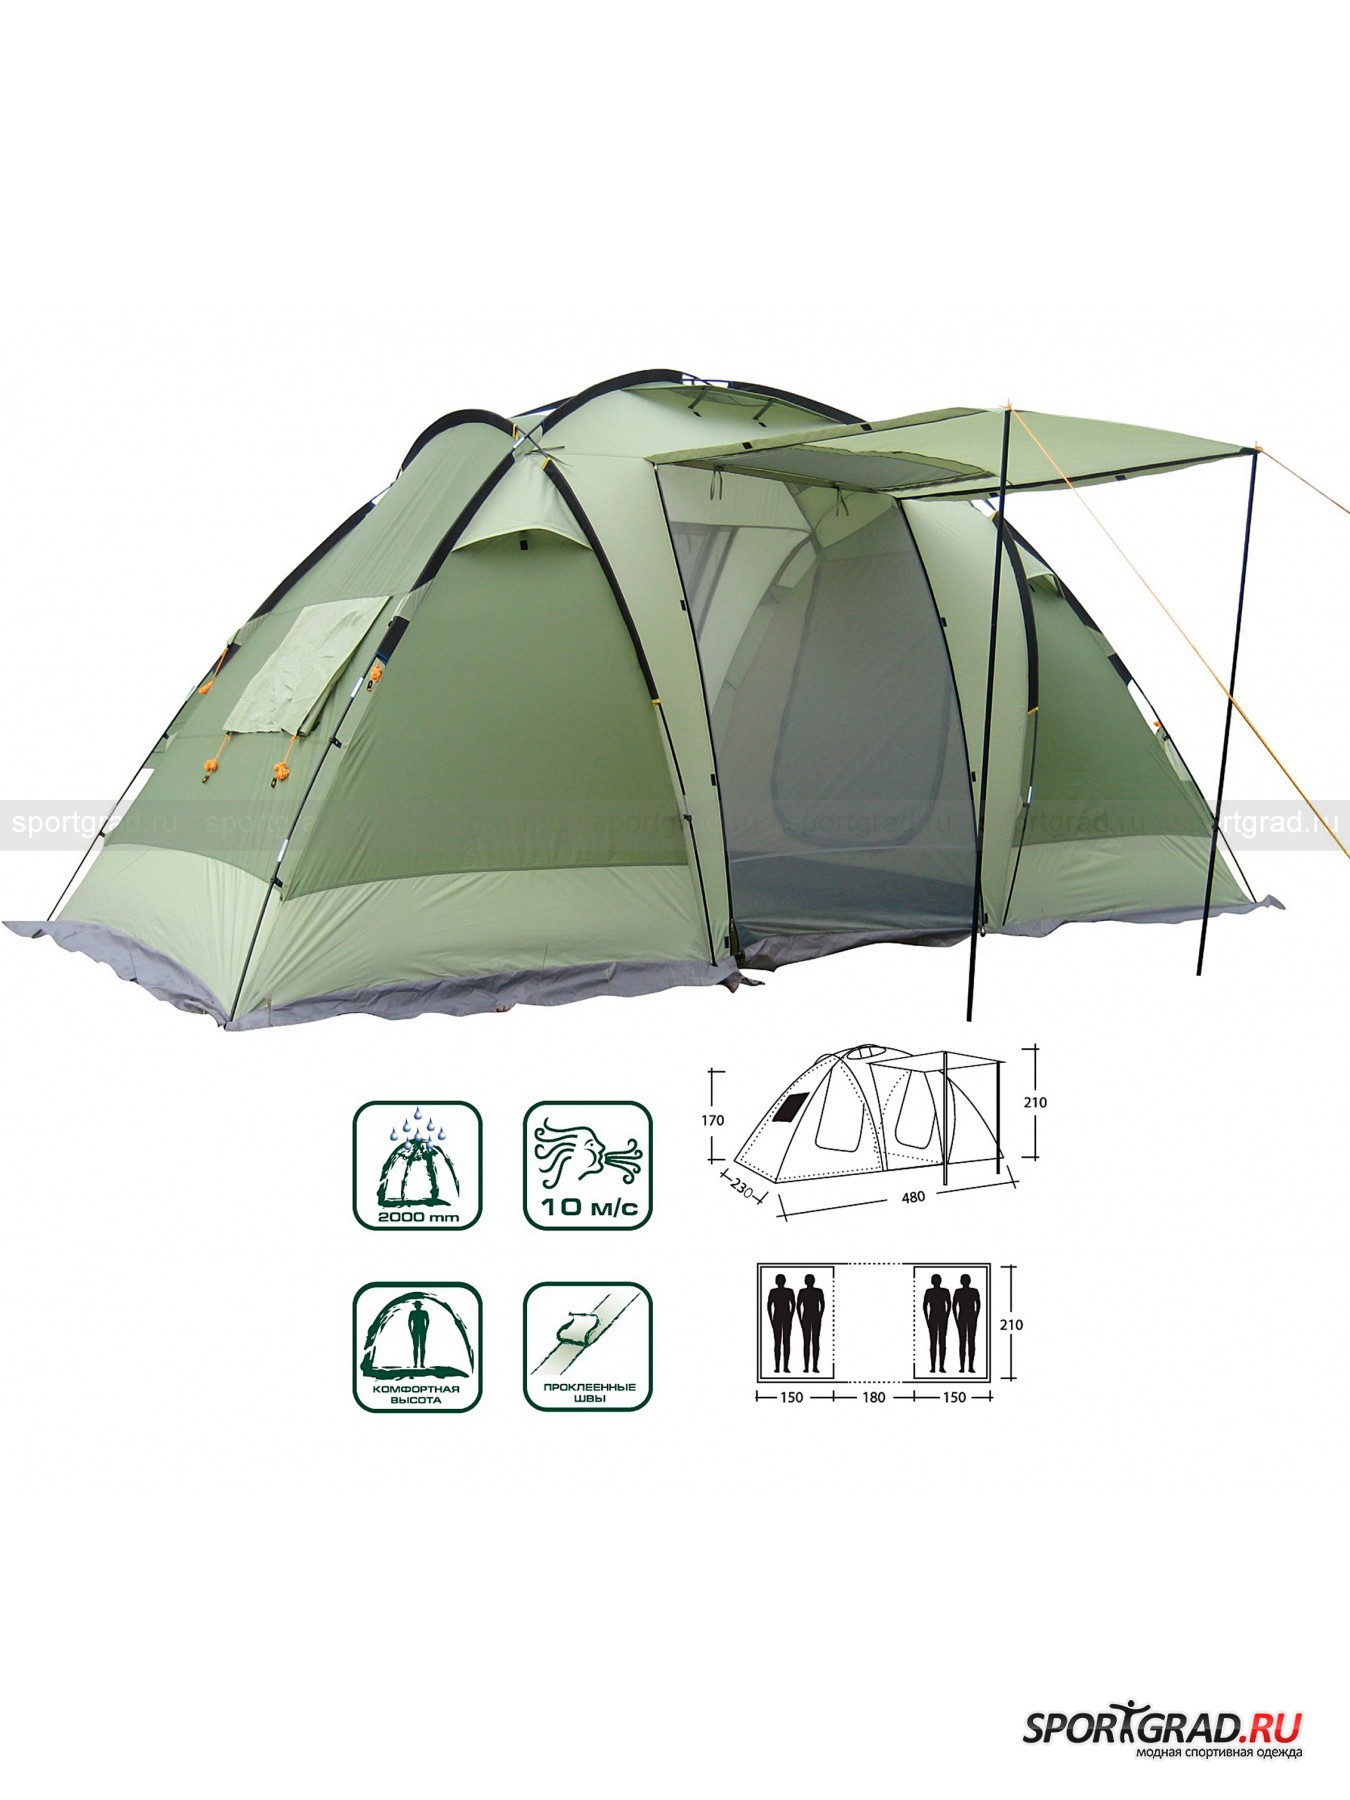 Палатка Brenta 400 MOON CAMP от Спортград